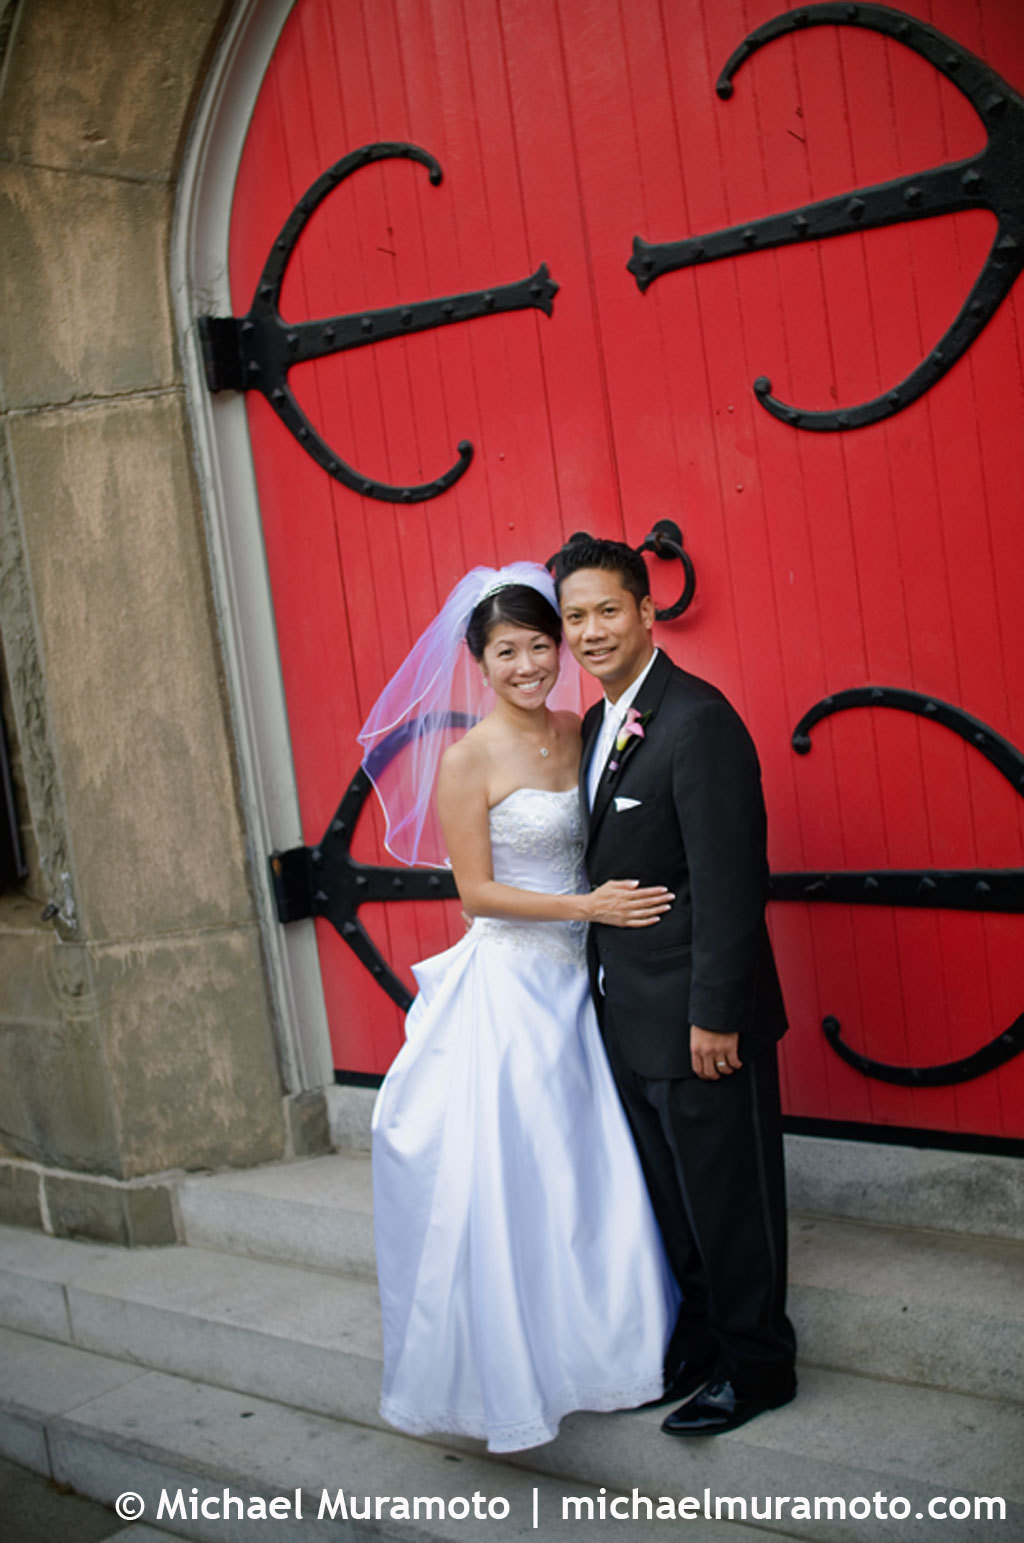 red, Bride, Groom, Portrait, Church, San francisco, Doors, Michael muramoto photography, Trinity episcopal